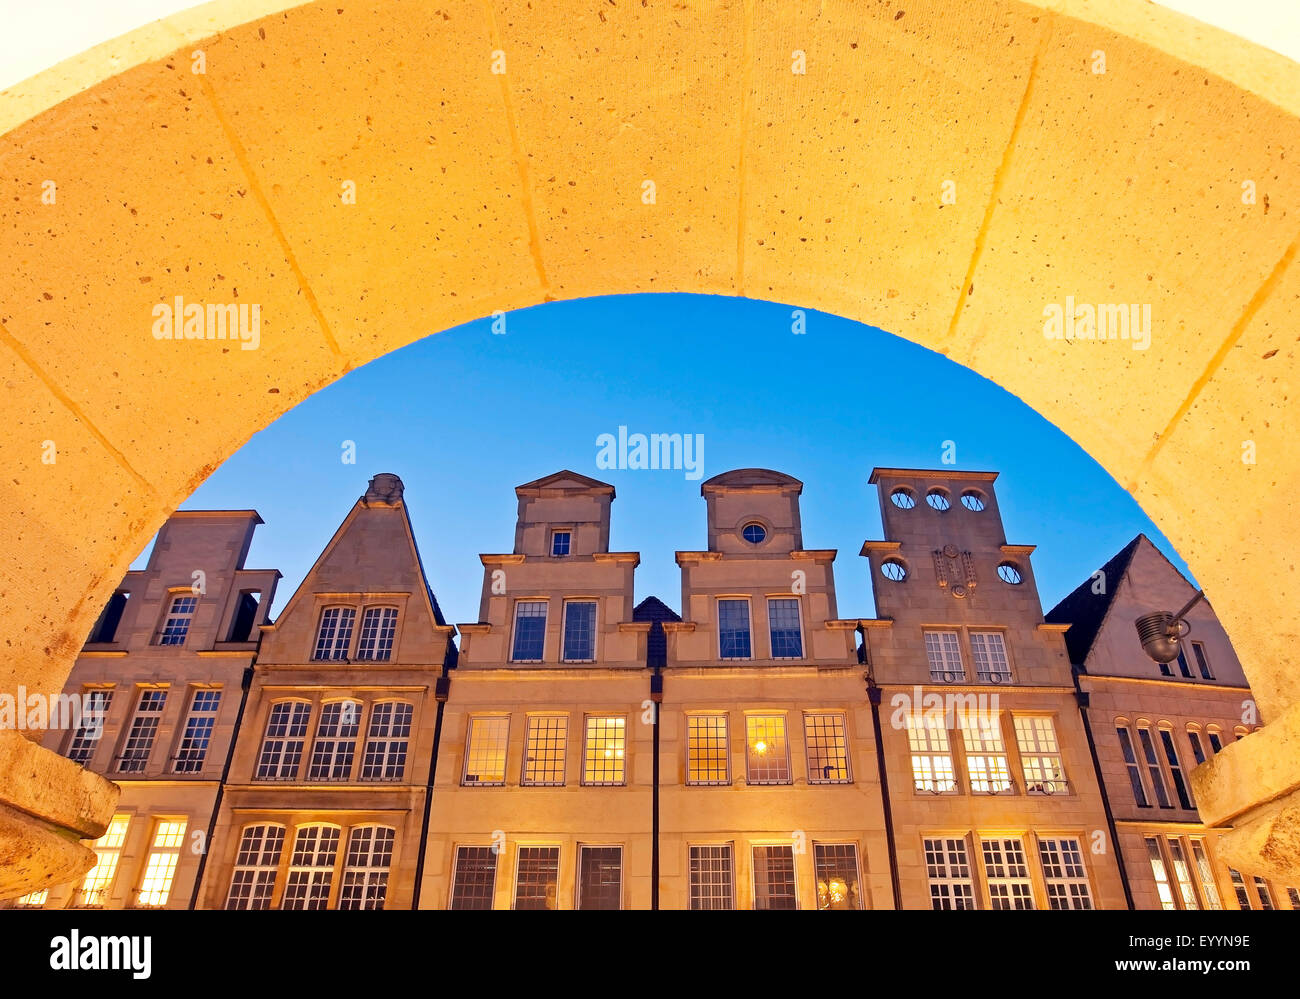 view through arcade to row of houses at historic principal marketplace, Germany, North Rhine-Westphalia, Munster - Stock Image